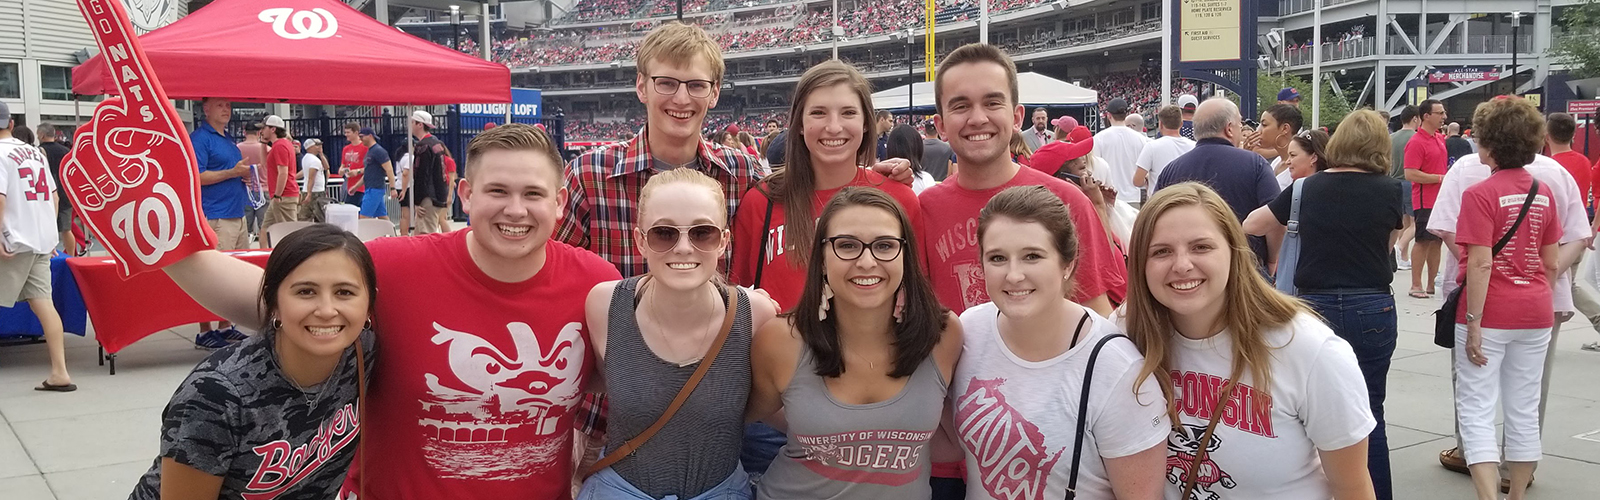 Wisconsin in Washington students wearing Badger gear at sporting event